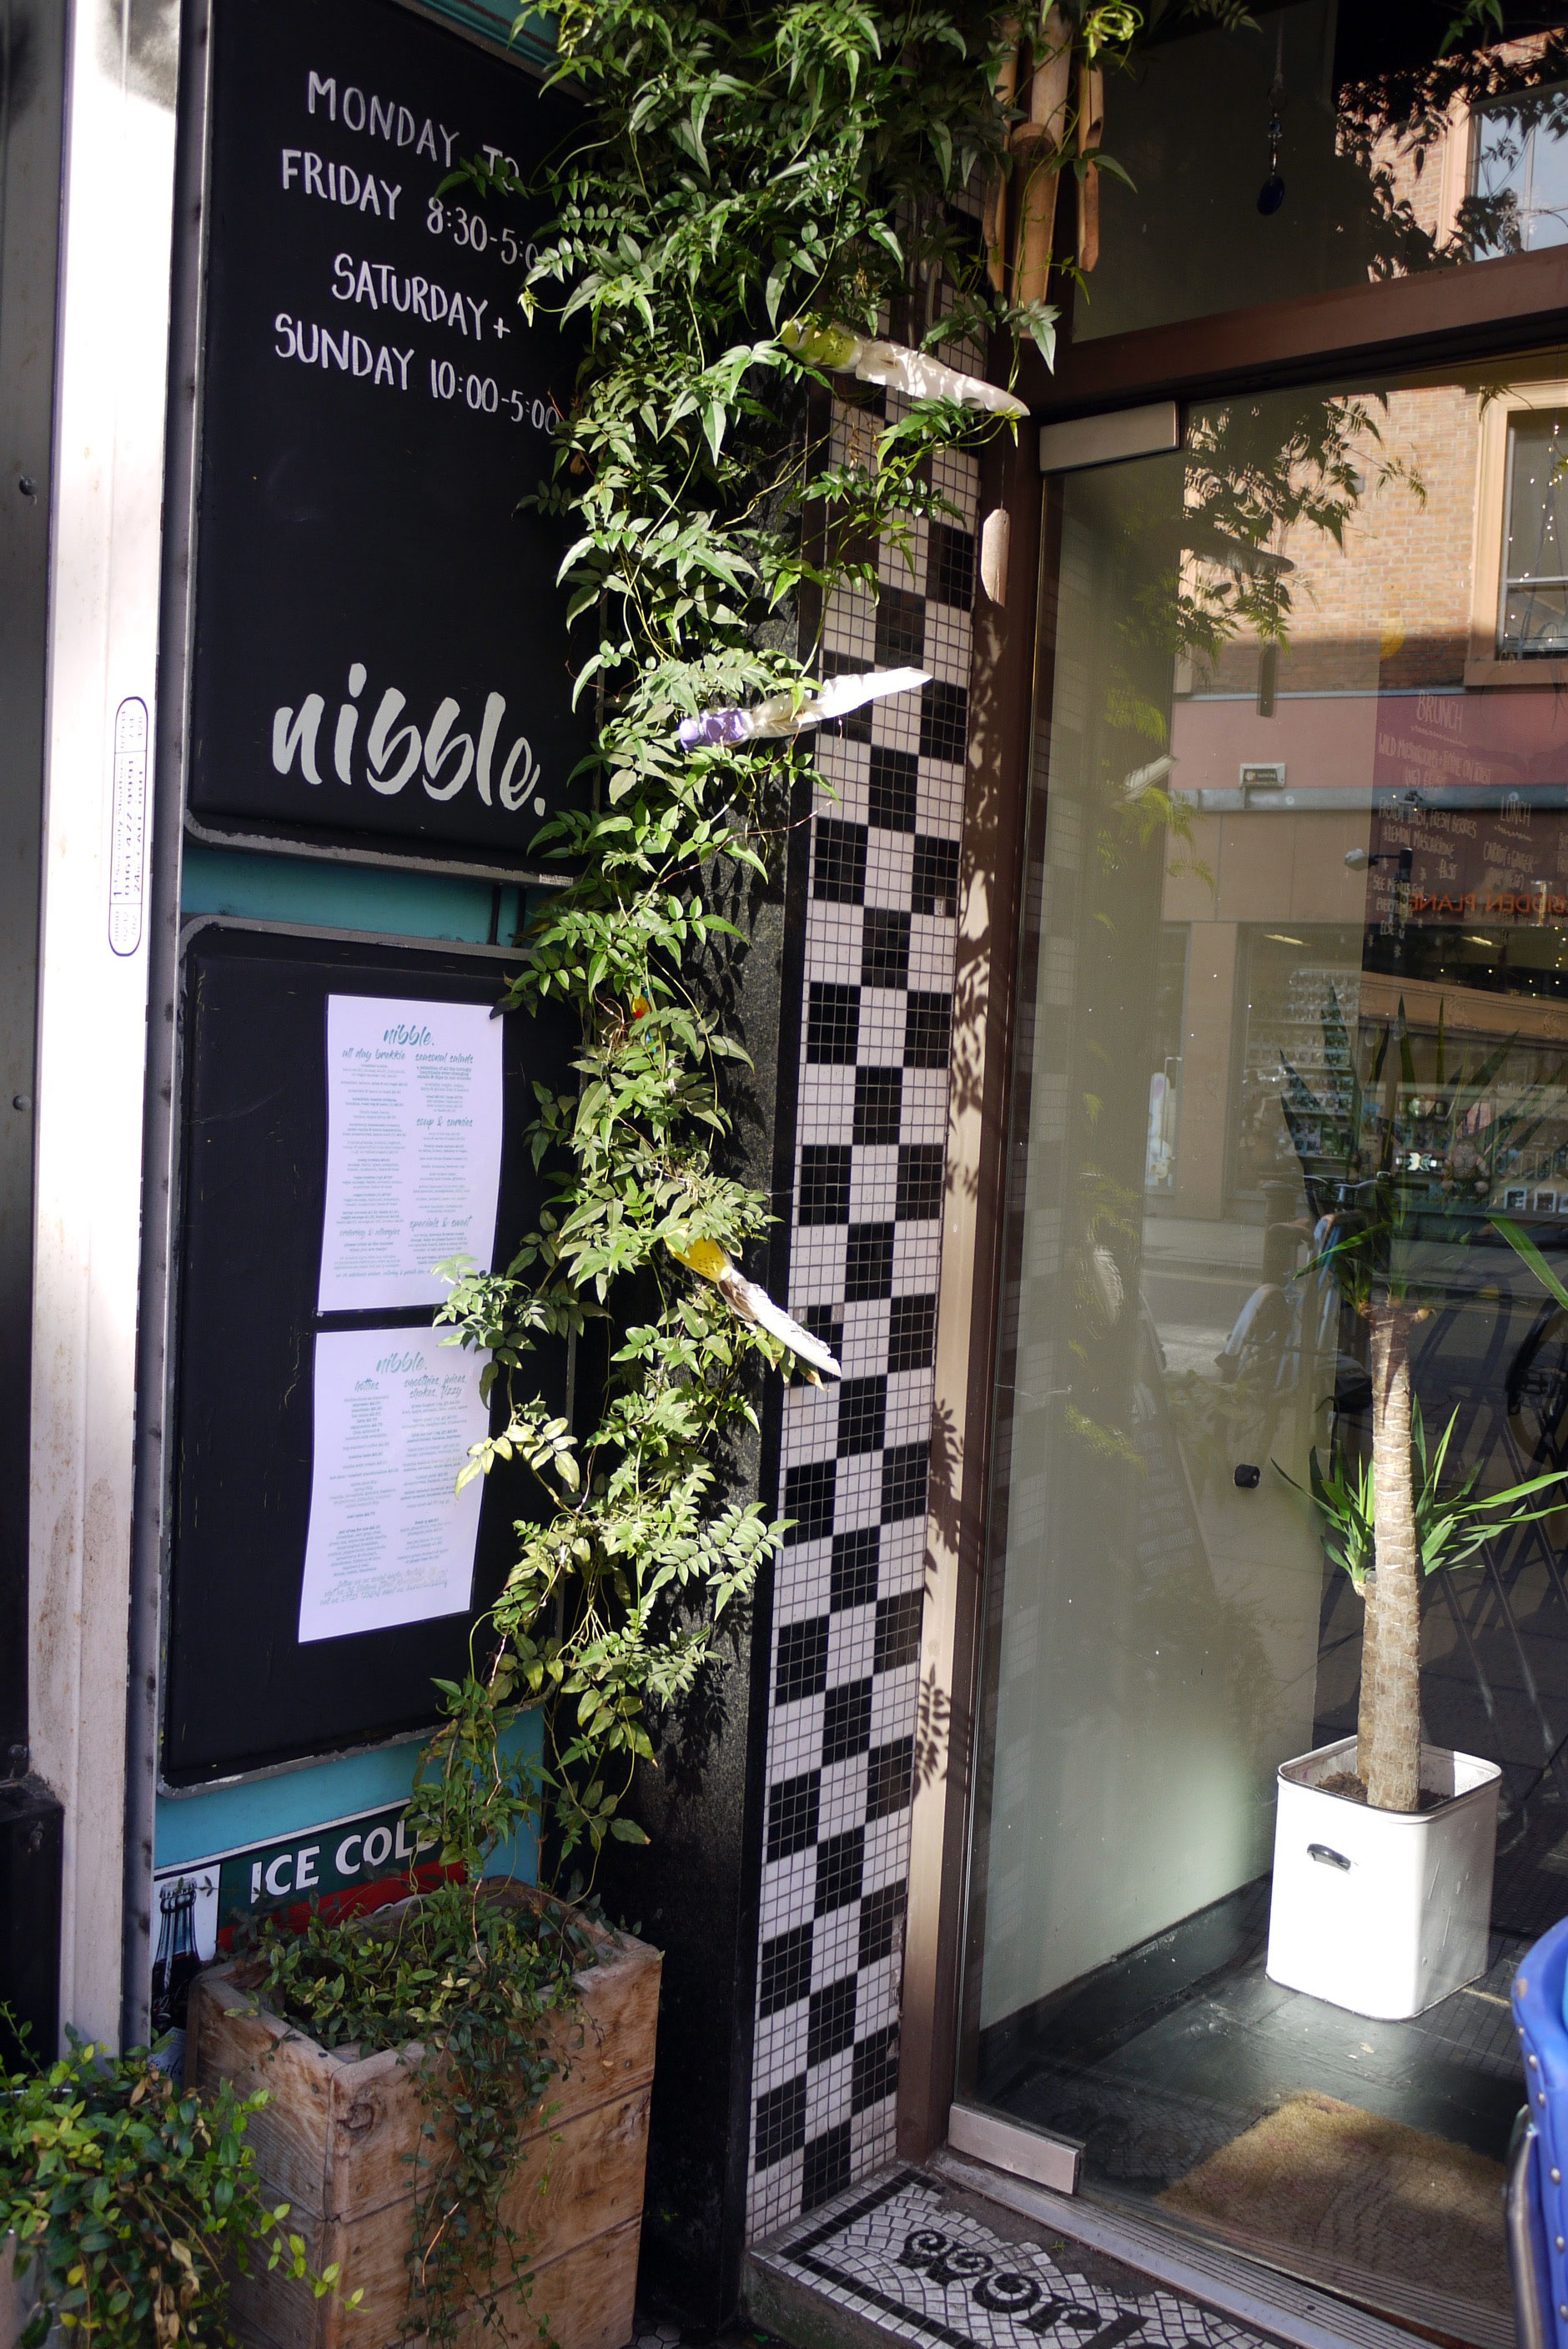 The door leading to Nibble NQ